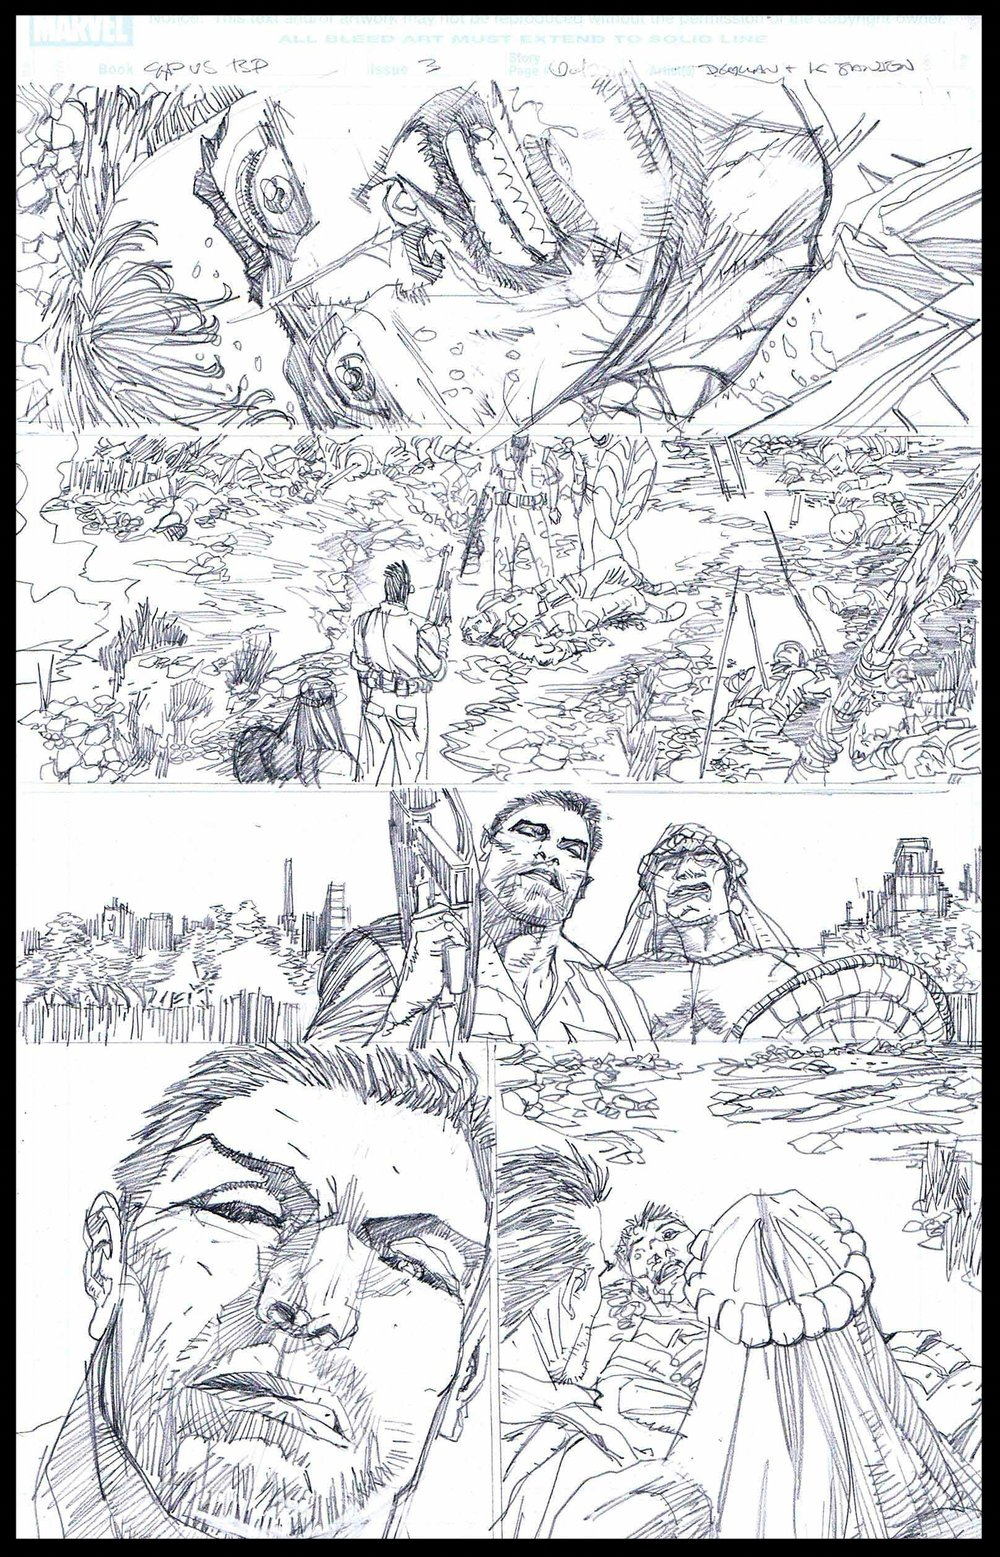 Flags of Our Fathers #3 - Page 1 - Pencils